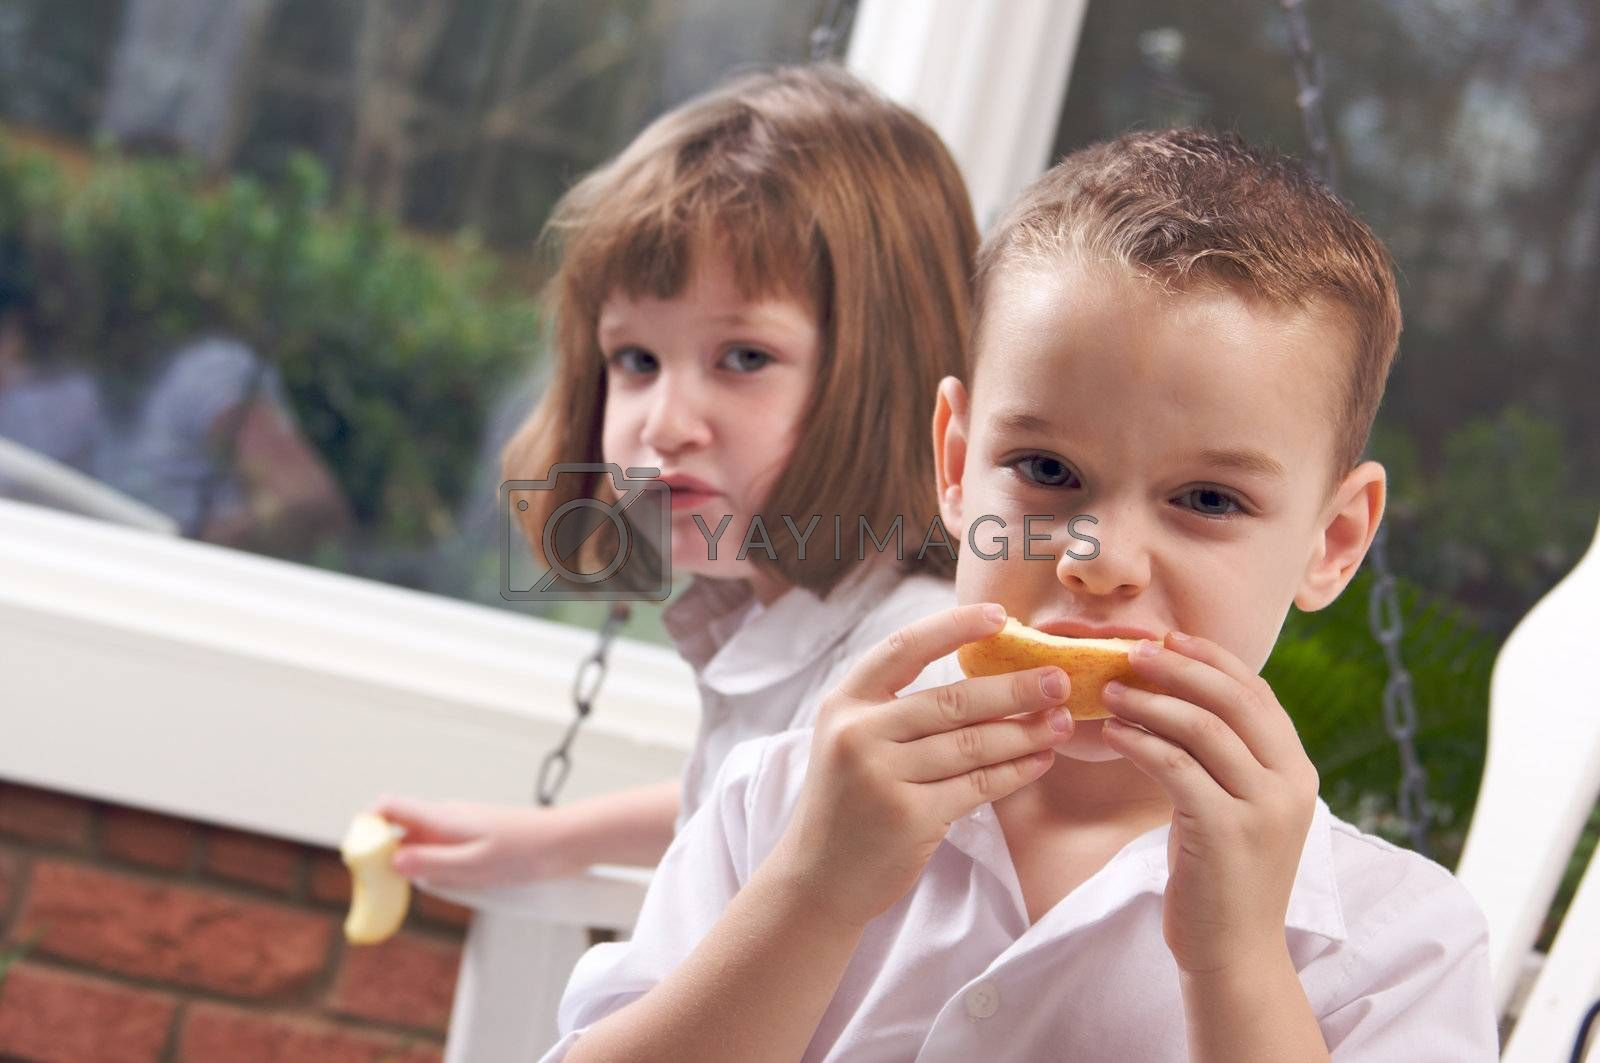 Sister and Brother Having Fun Eating an Apple